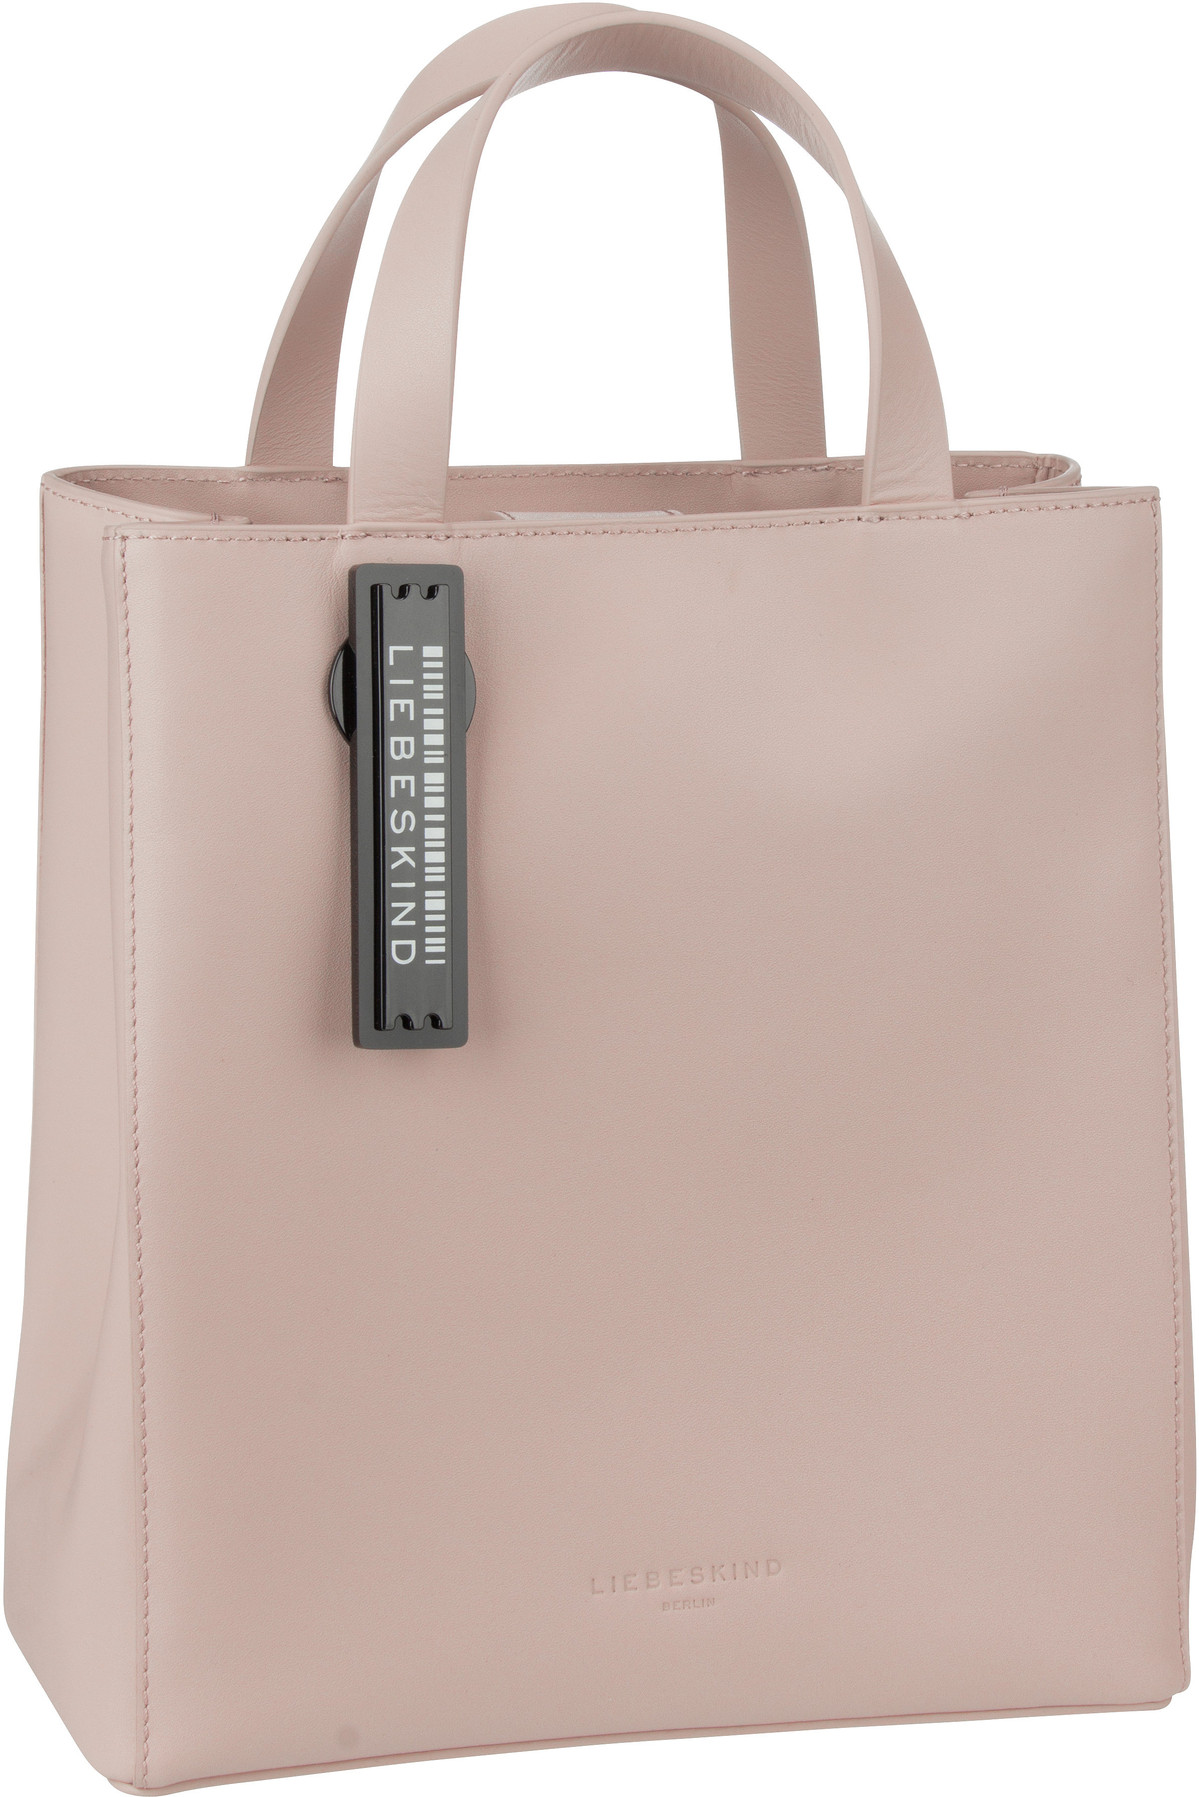 Berlin Handtasche Paper Bag Tote S Dusty Rose